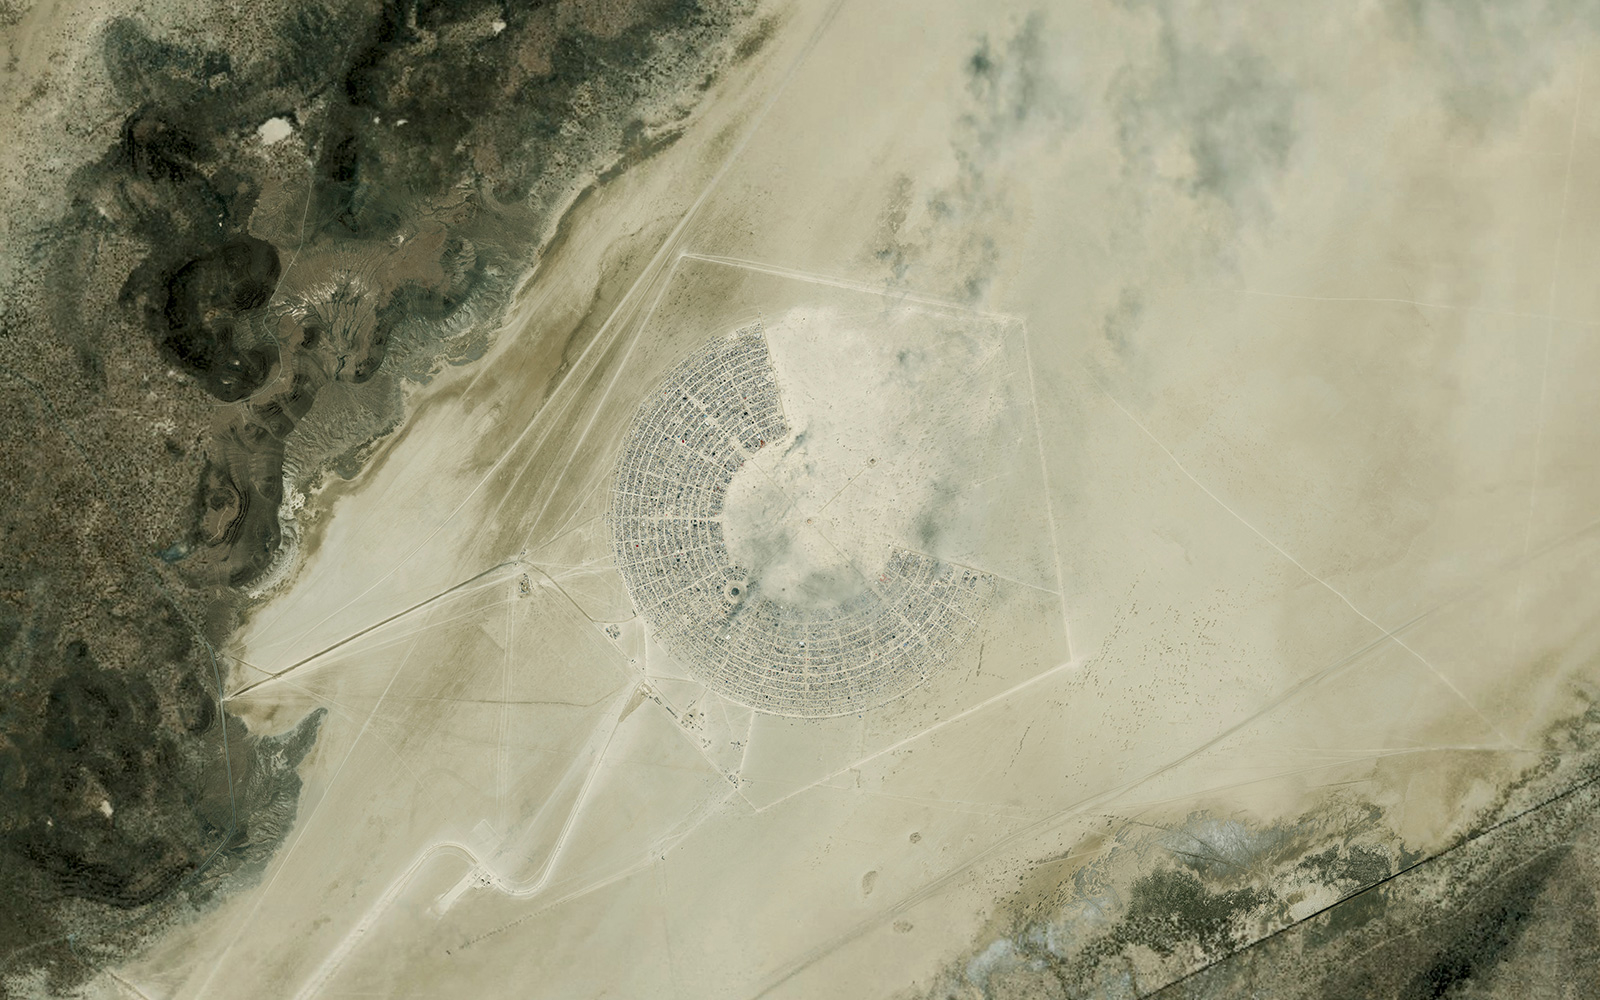 BURNINGMAN0915.jpg